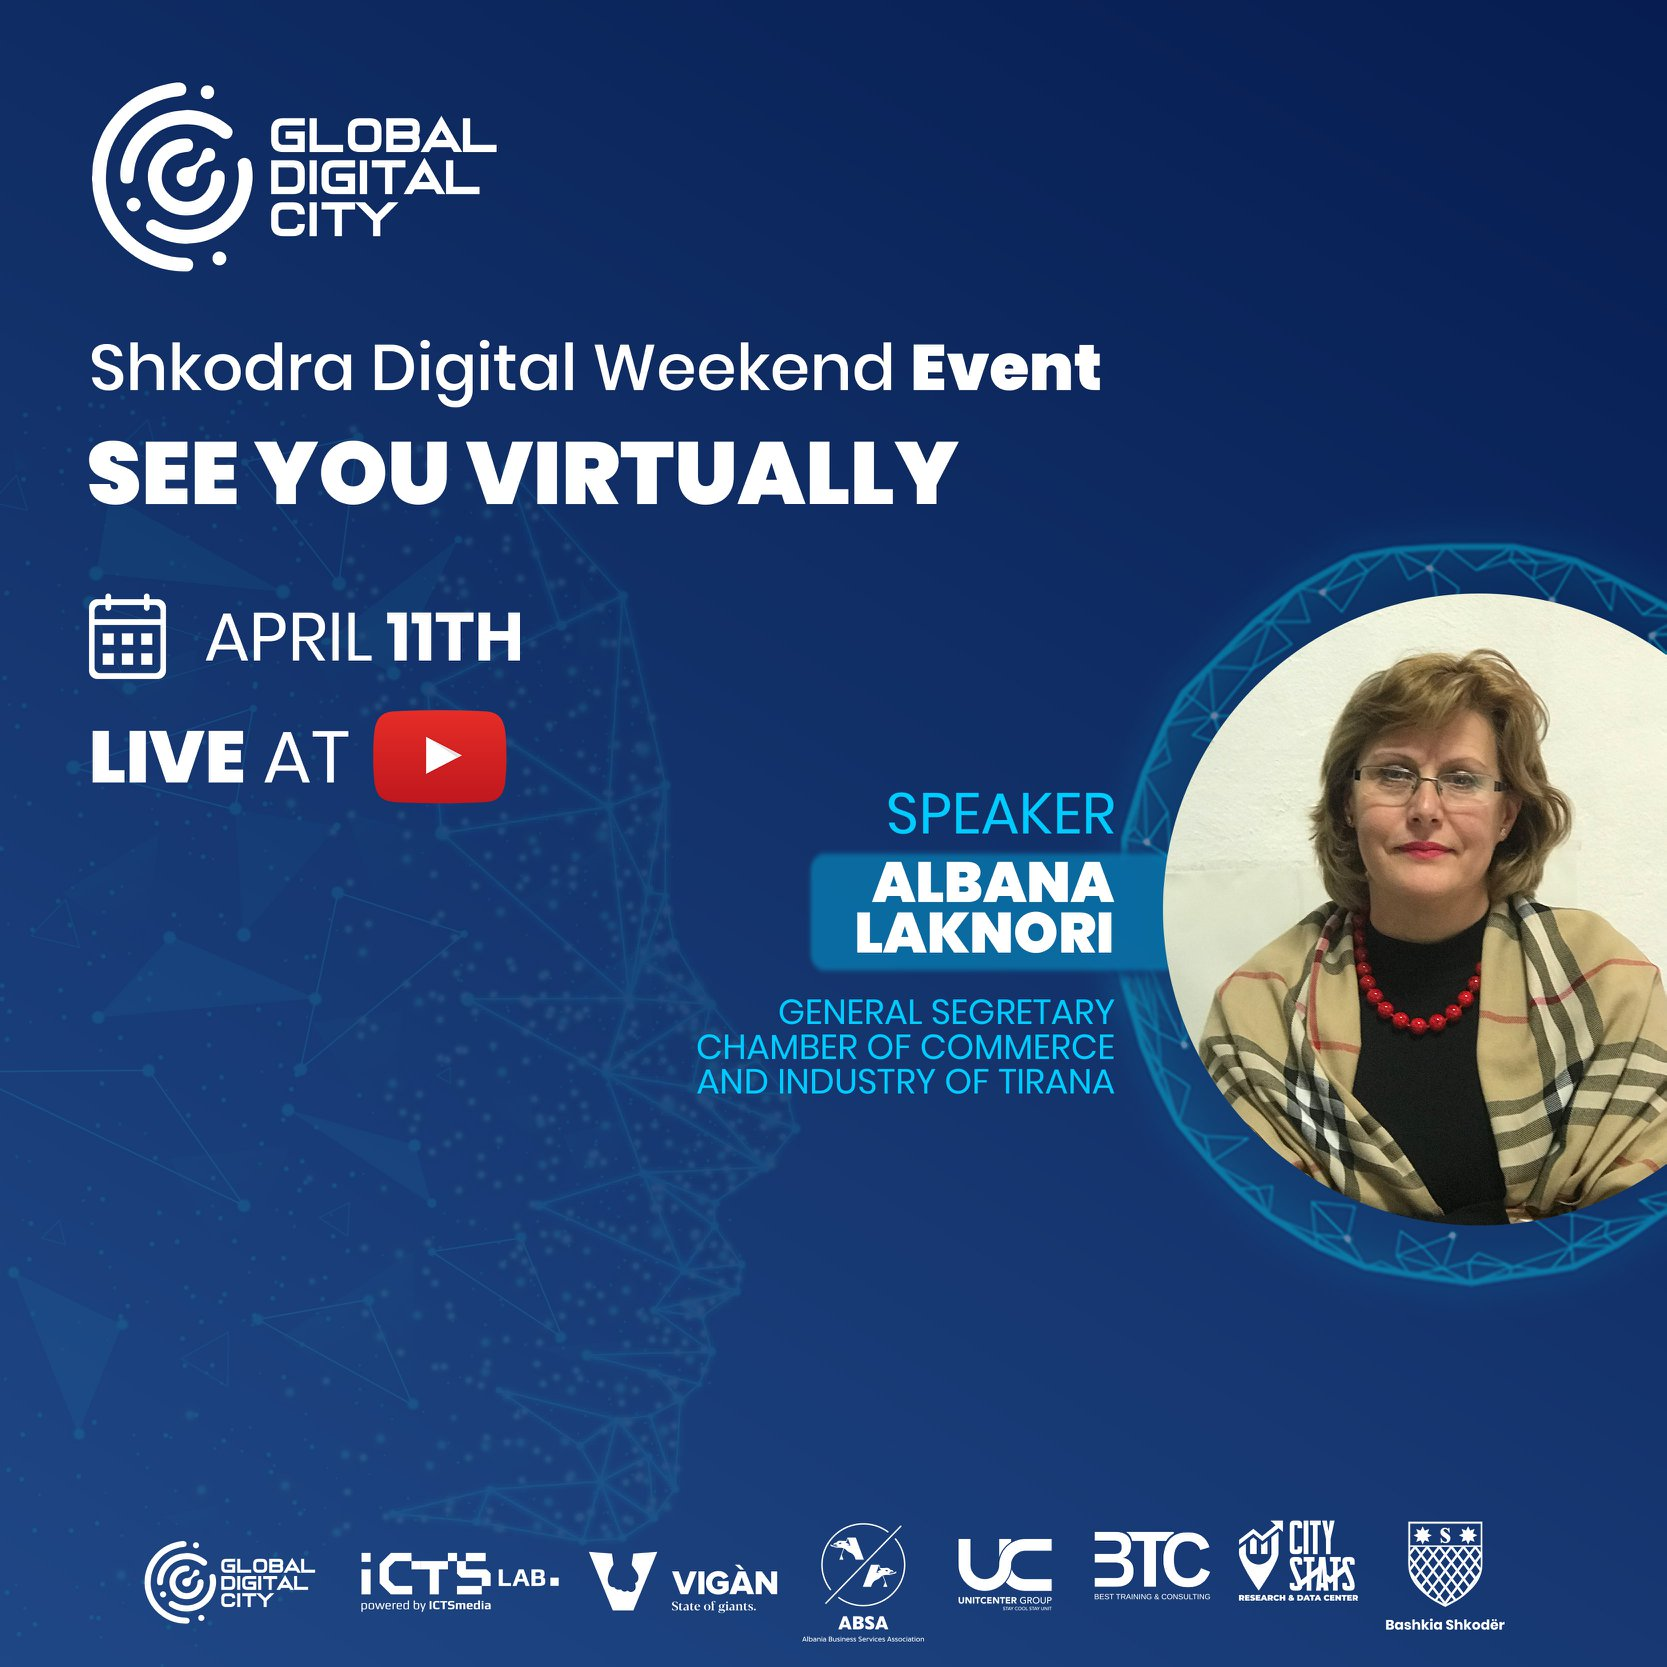 Albana Laknori dhoma e bzinesve dhe industrise tirane digital event global digital city